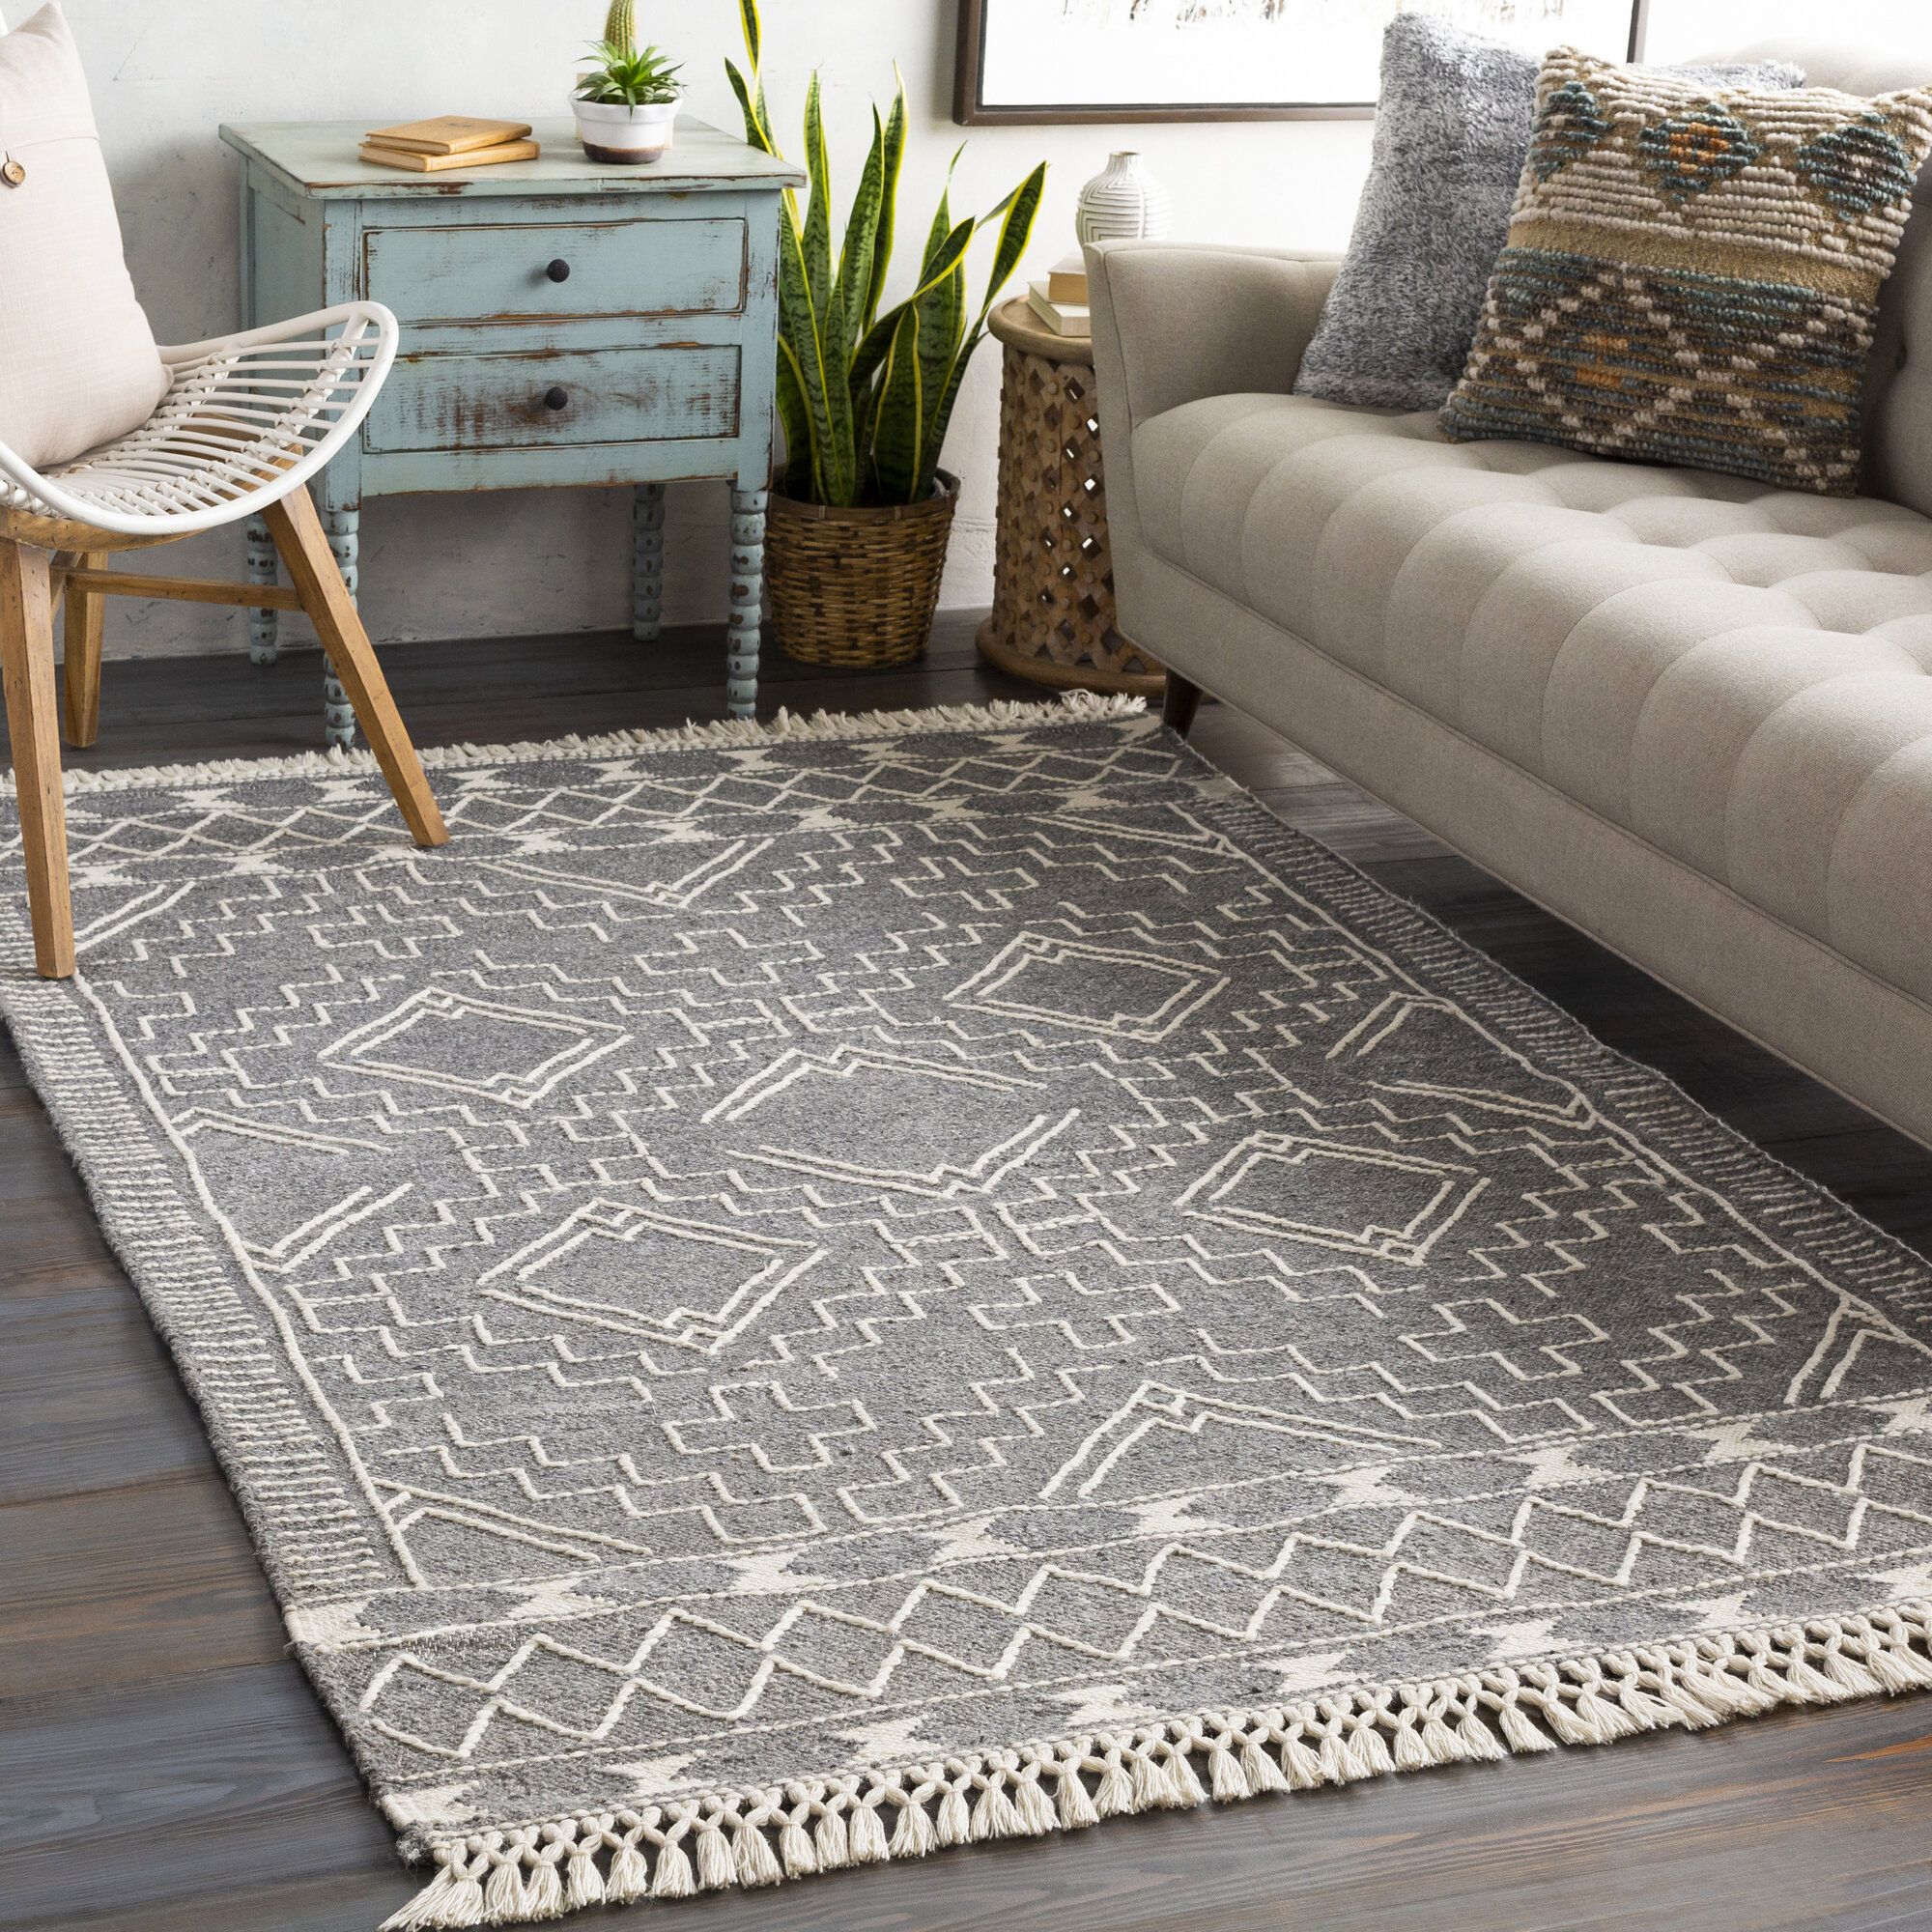 Hilley Hand Tufted Wool Gray Cream Area